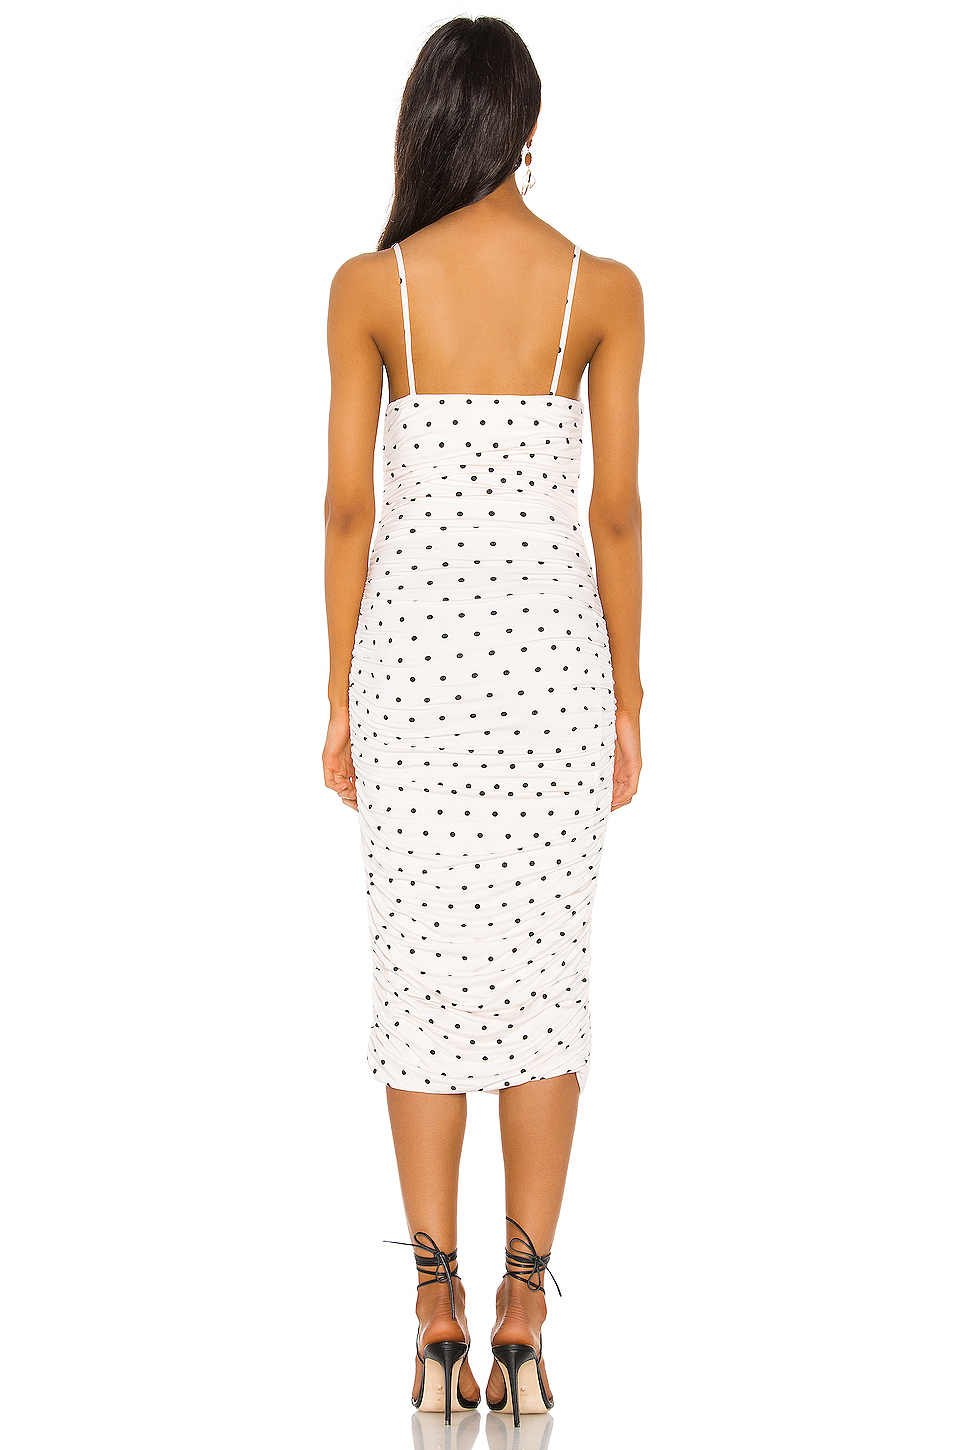 Privacy Please Camille Midi Dress